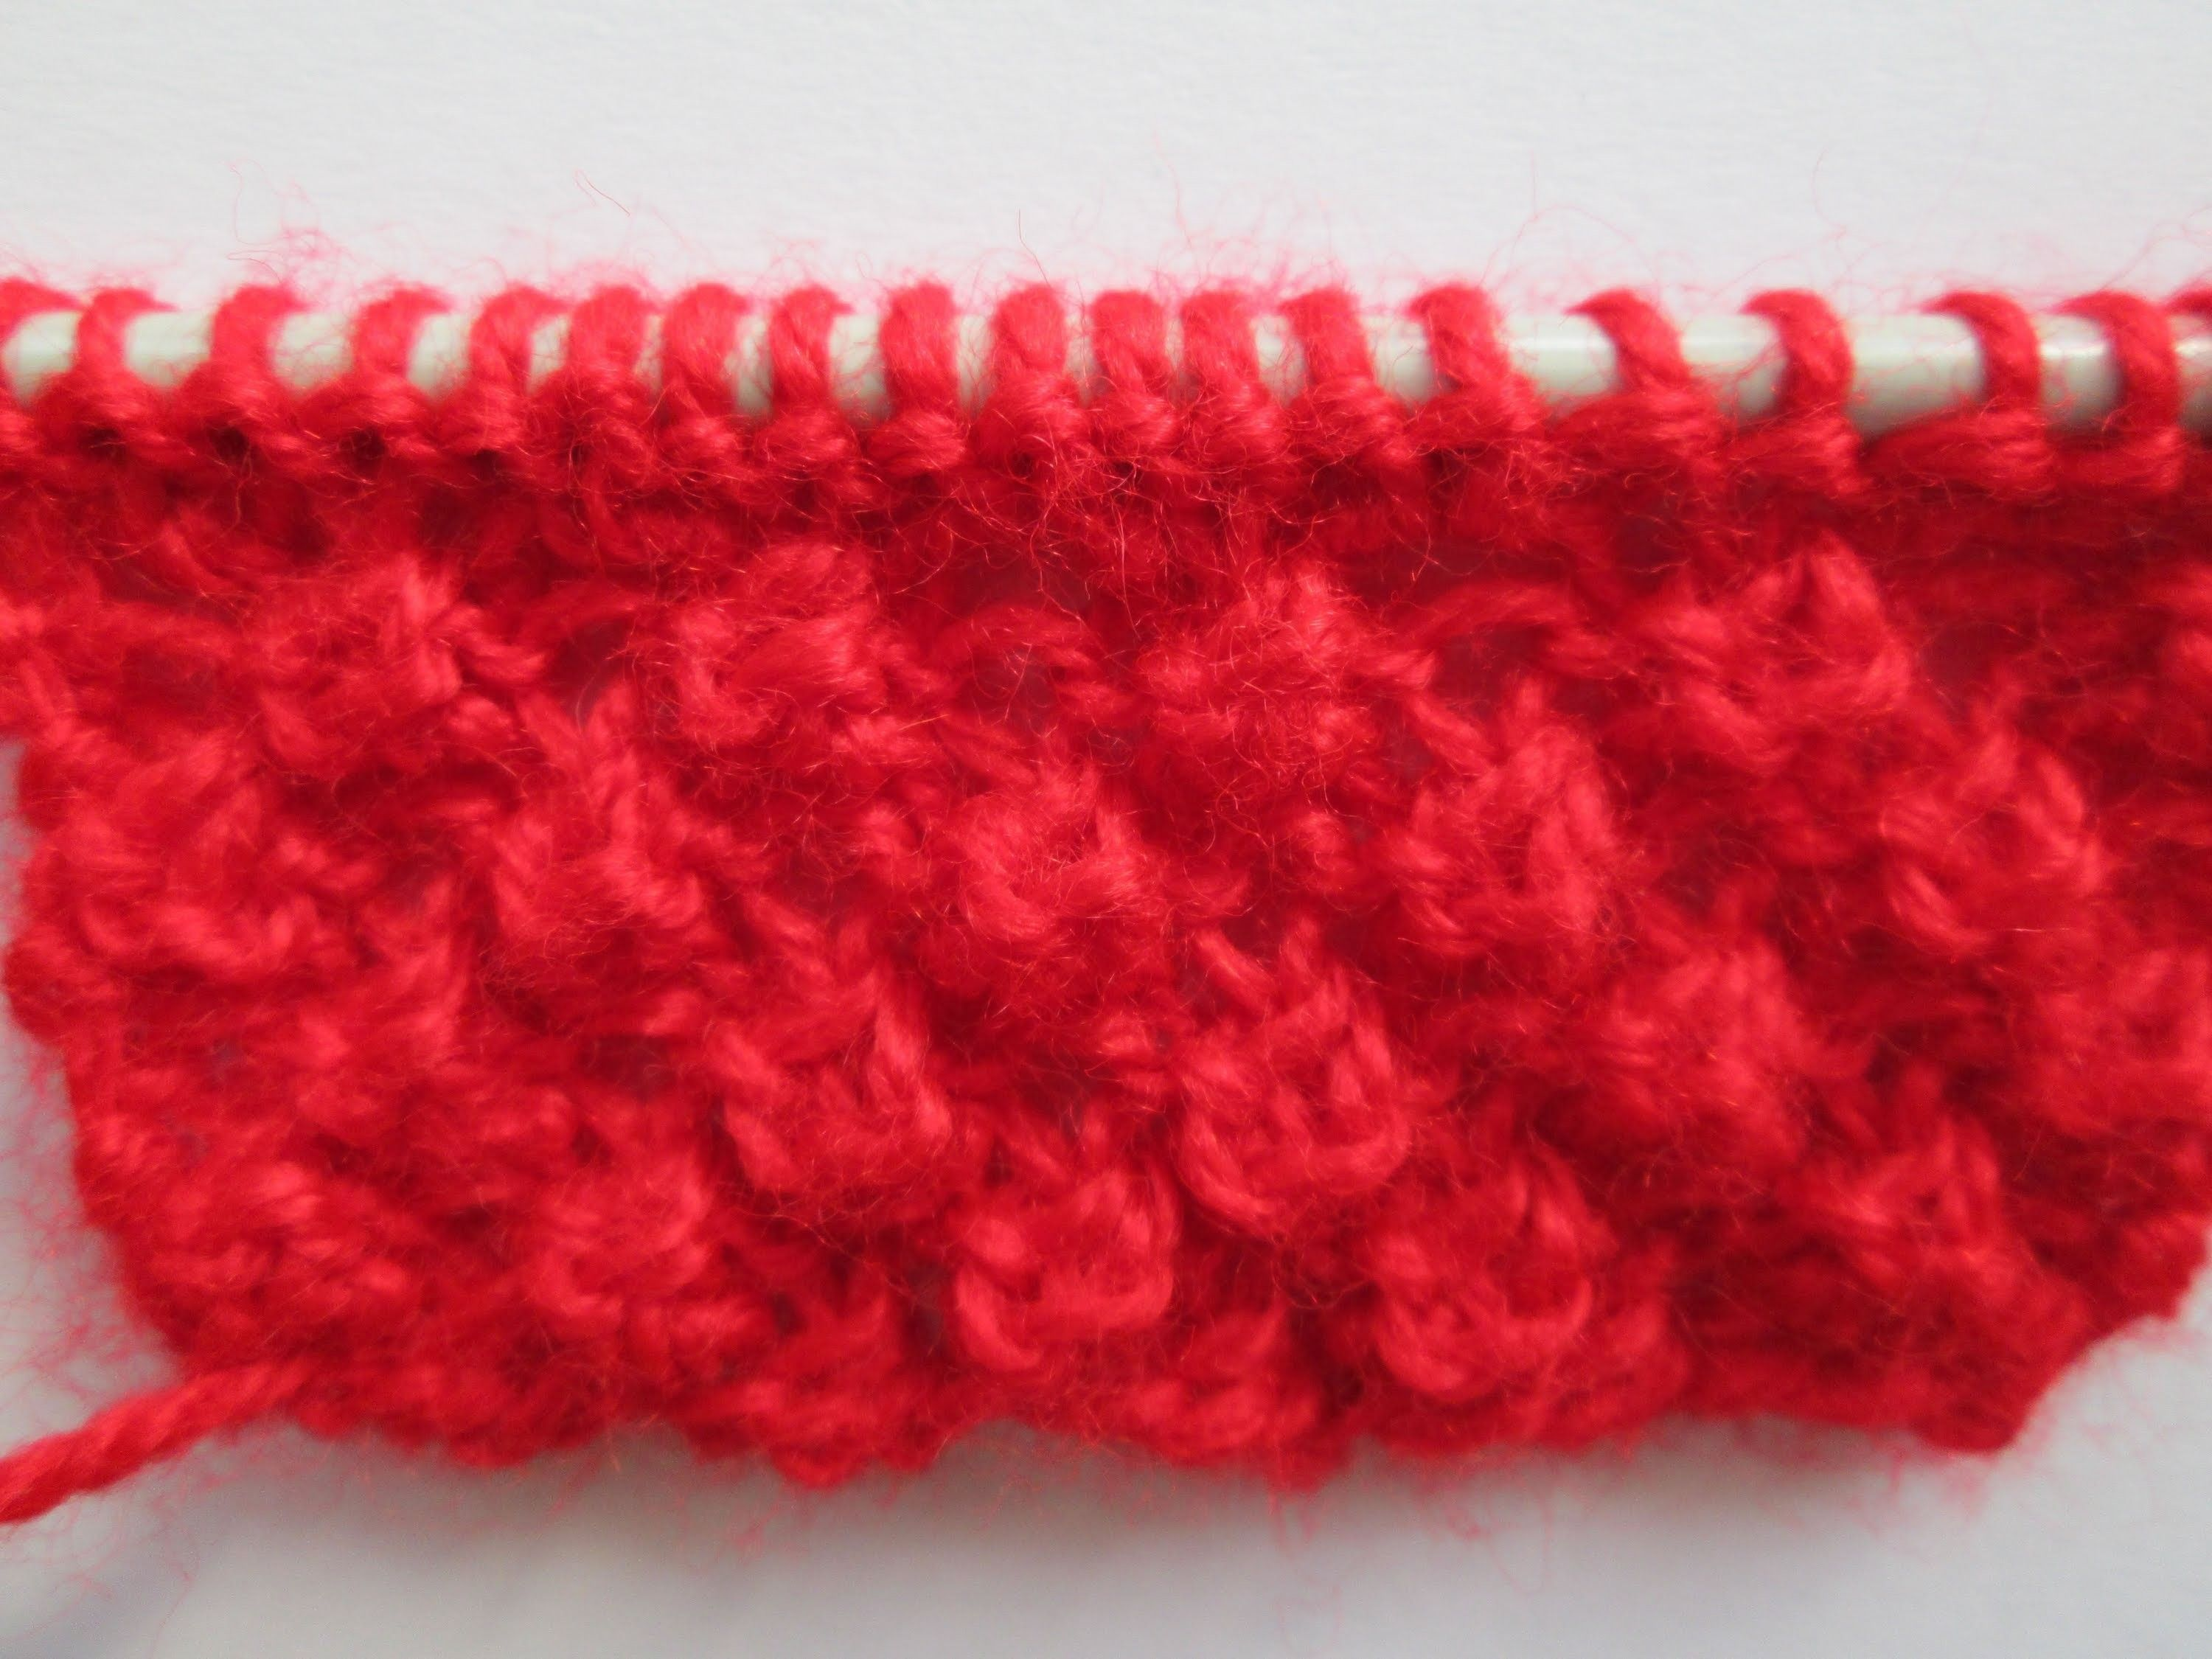 Diy Tuto Tricot Apprendre A Tricoter Le Point D Astrakan